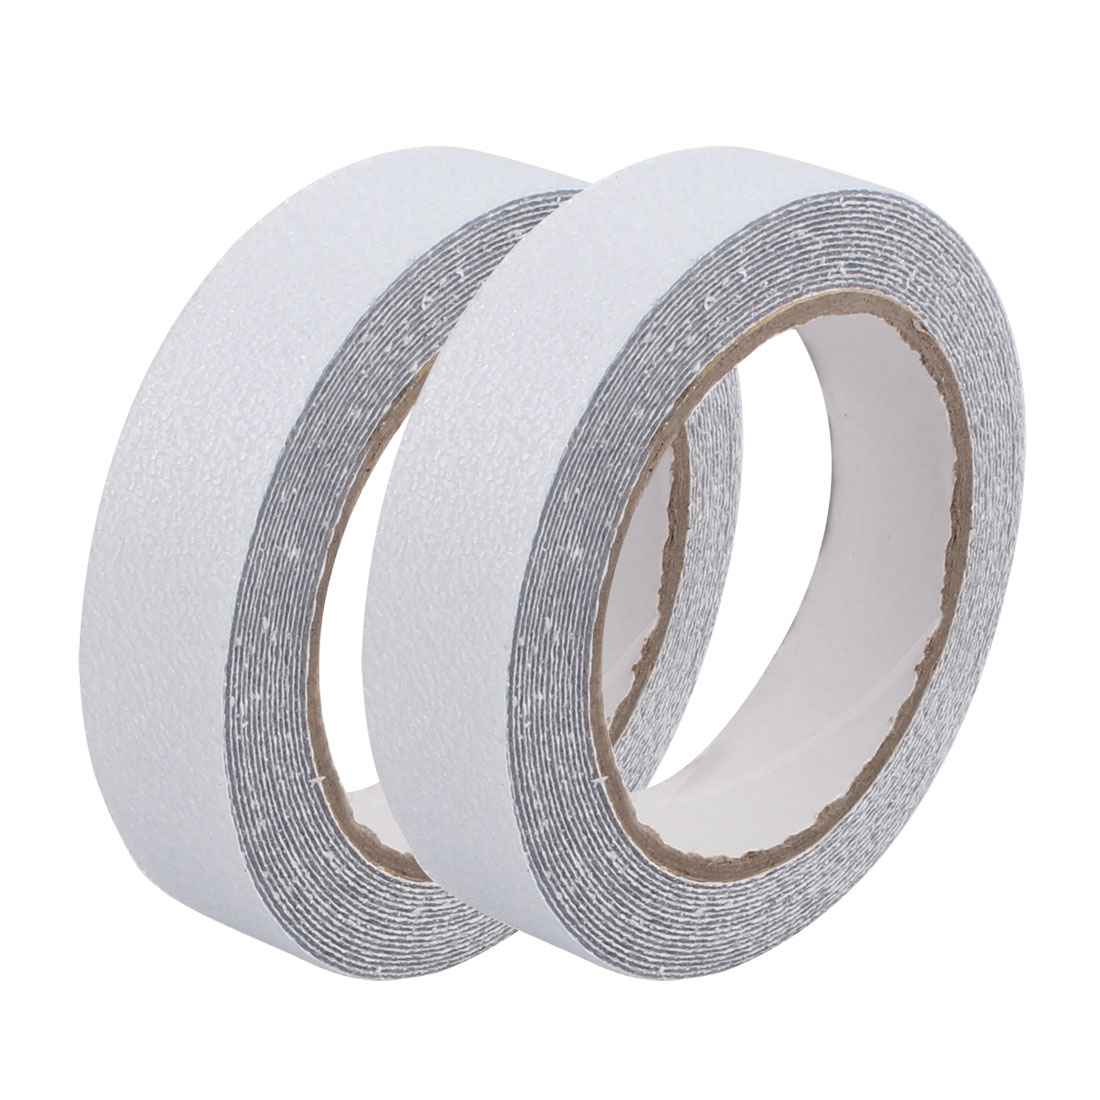 2Pcs White Non-Slip Grip Tape Safety High Traction Indoor Outdoor 2.5mmx5m